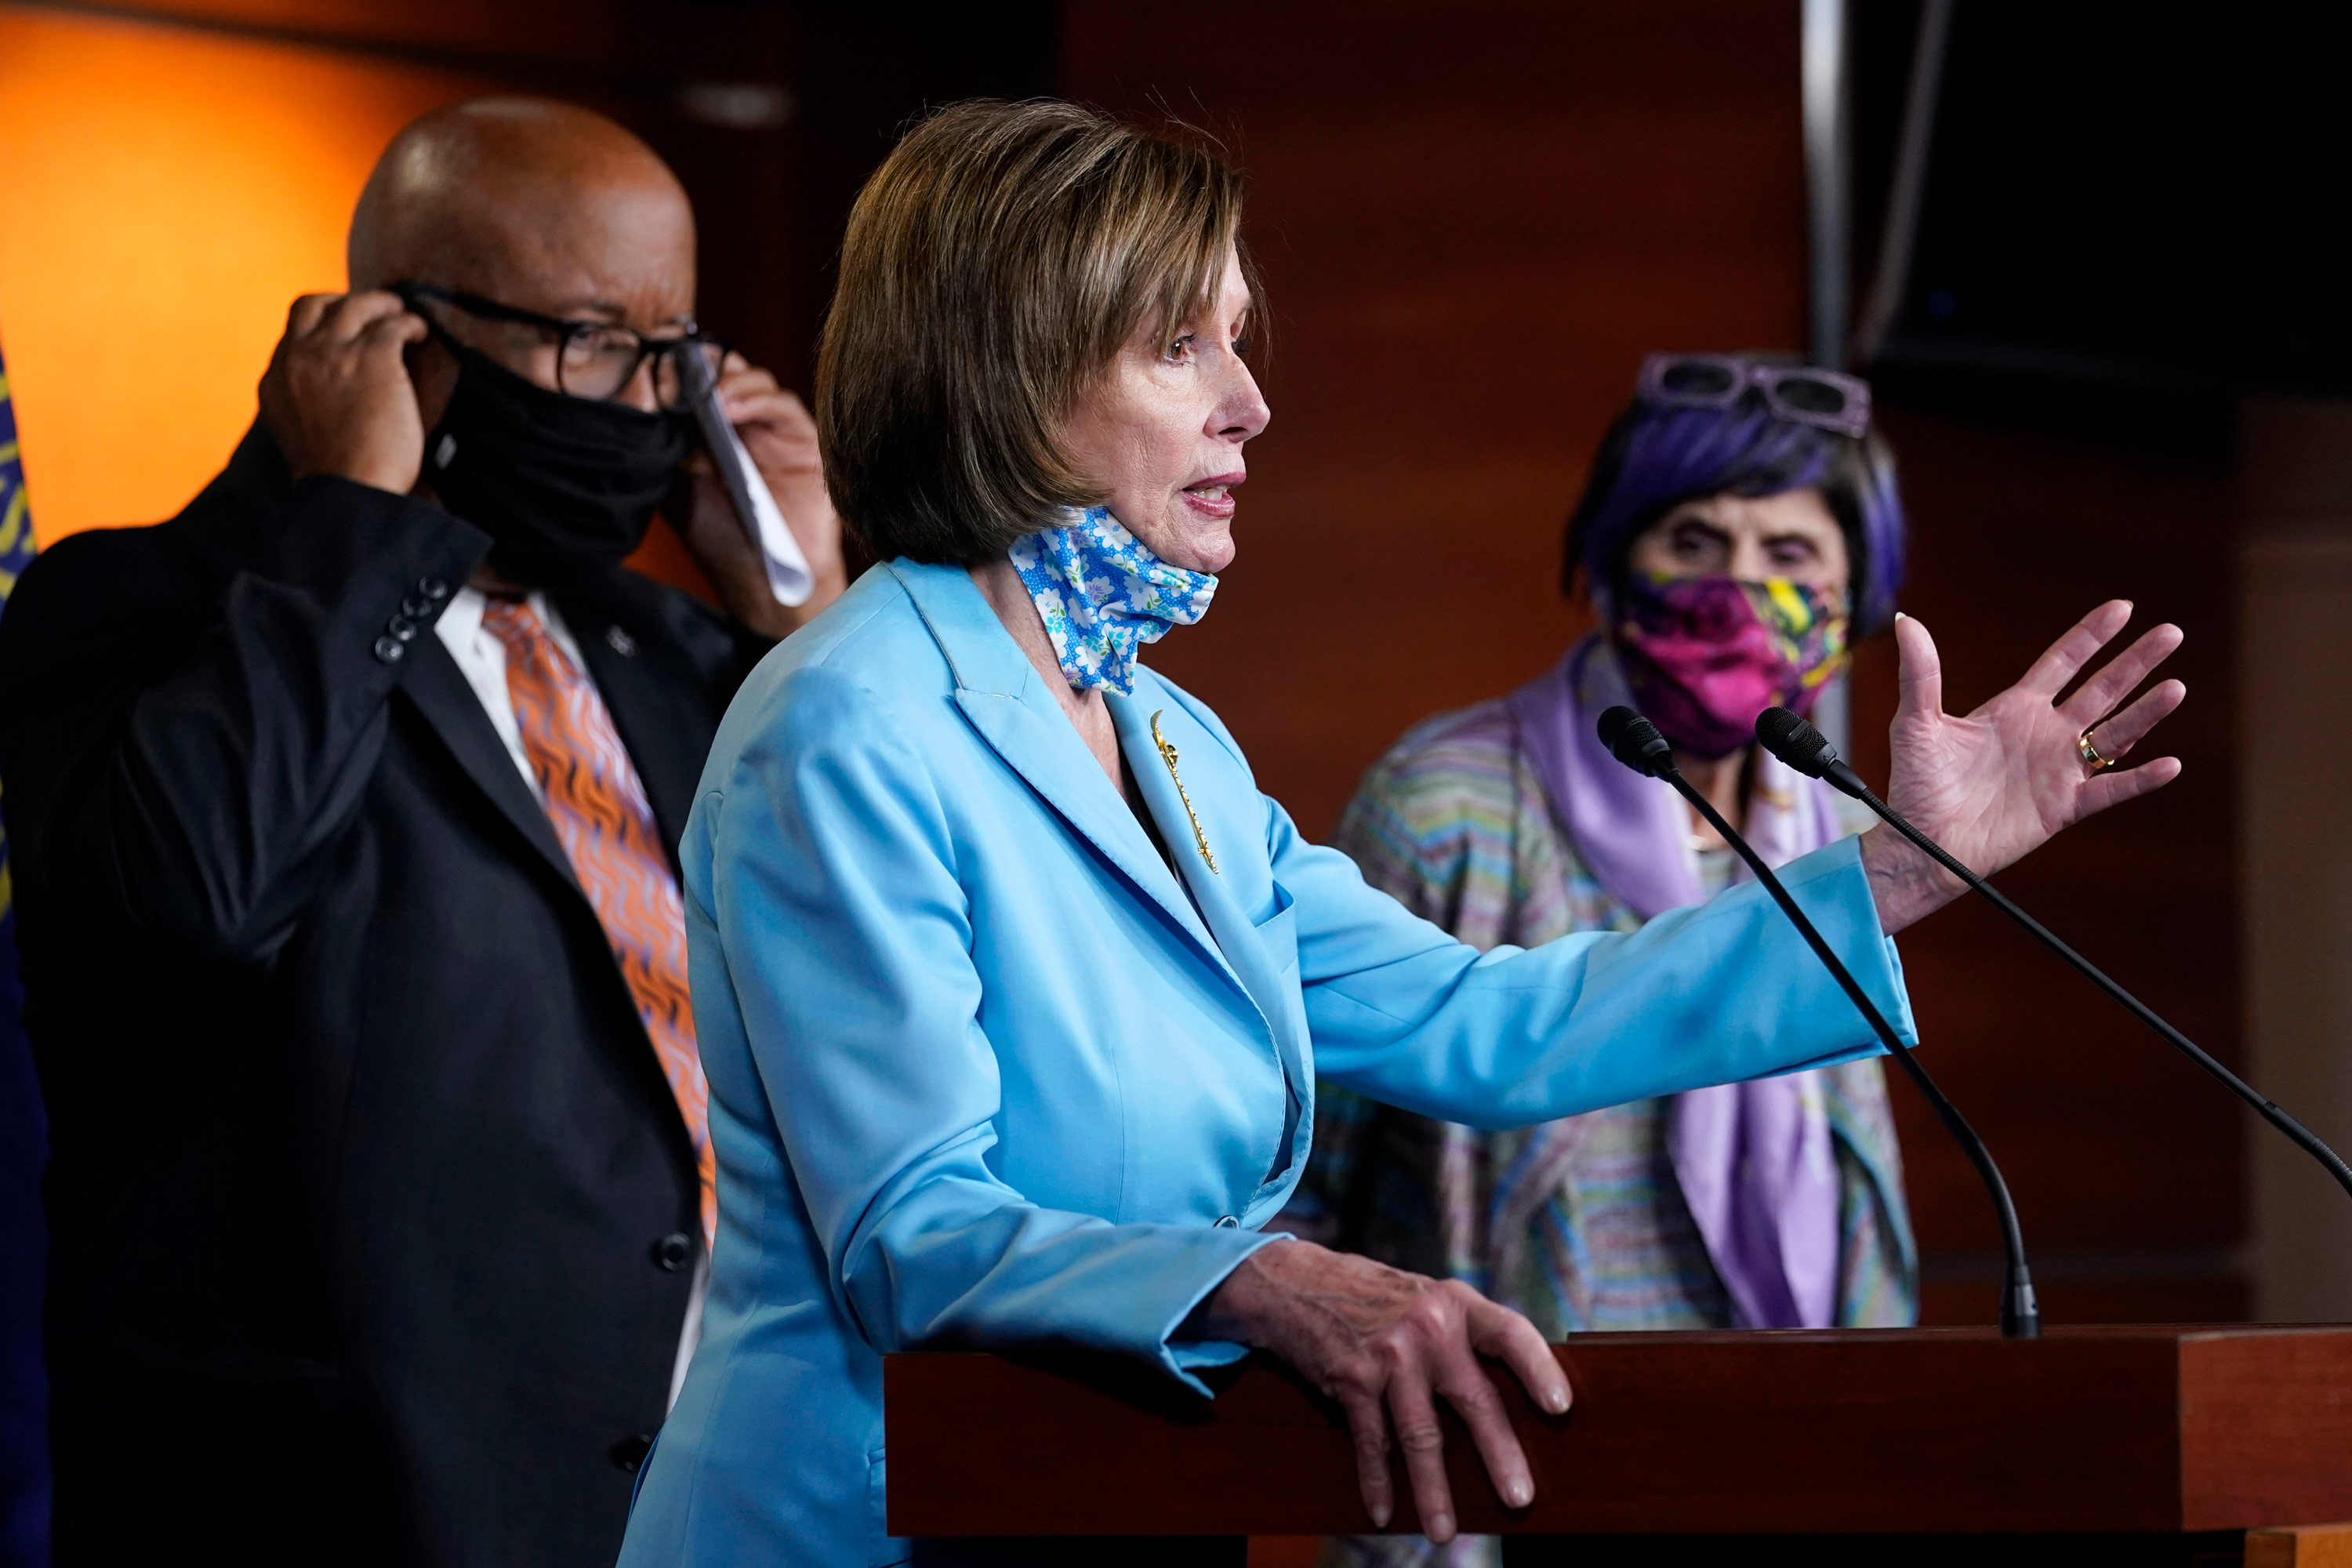 House Speaker Nancy Pelosi, center, flanked by Rep. Benny Thompson, left, and Rep. Rosa DeLauro, right, talks to reporters on Capitol Hill in Washington, DC, on May 19.